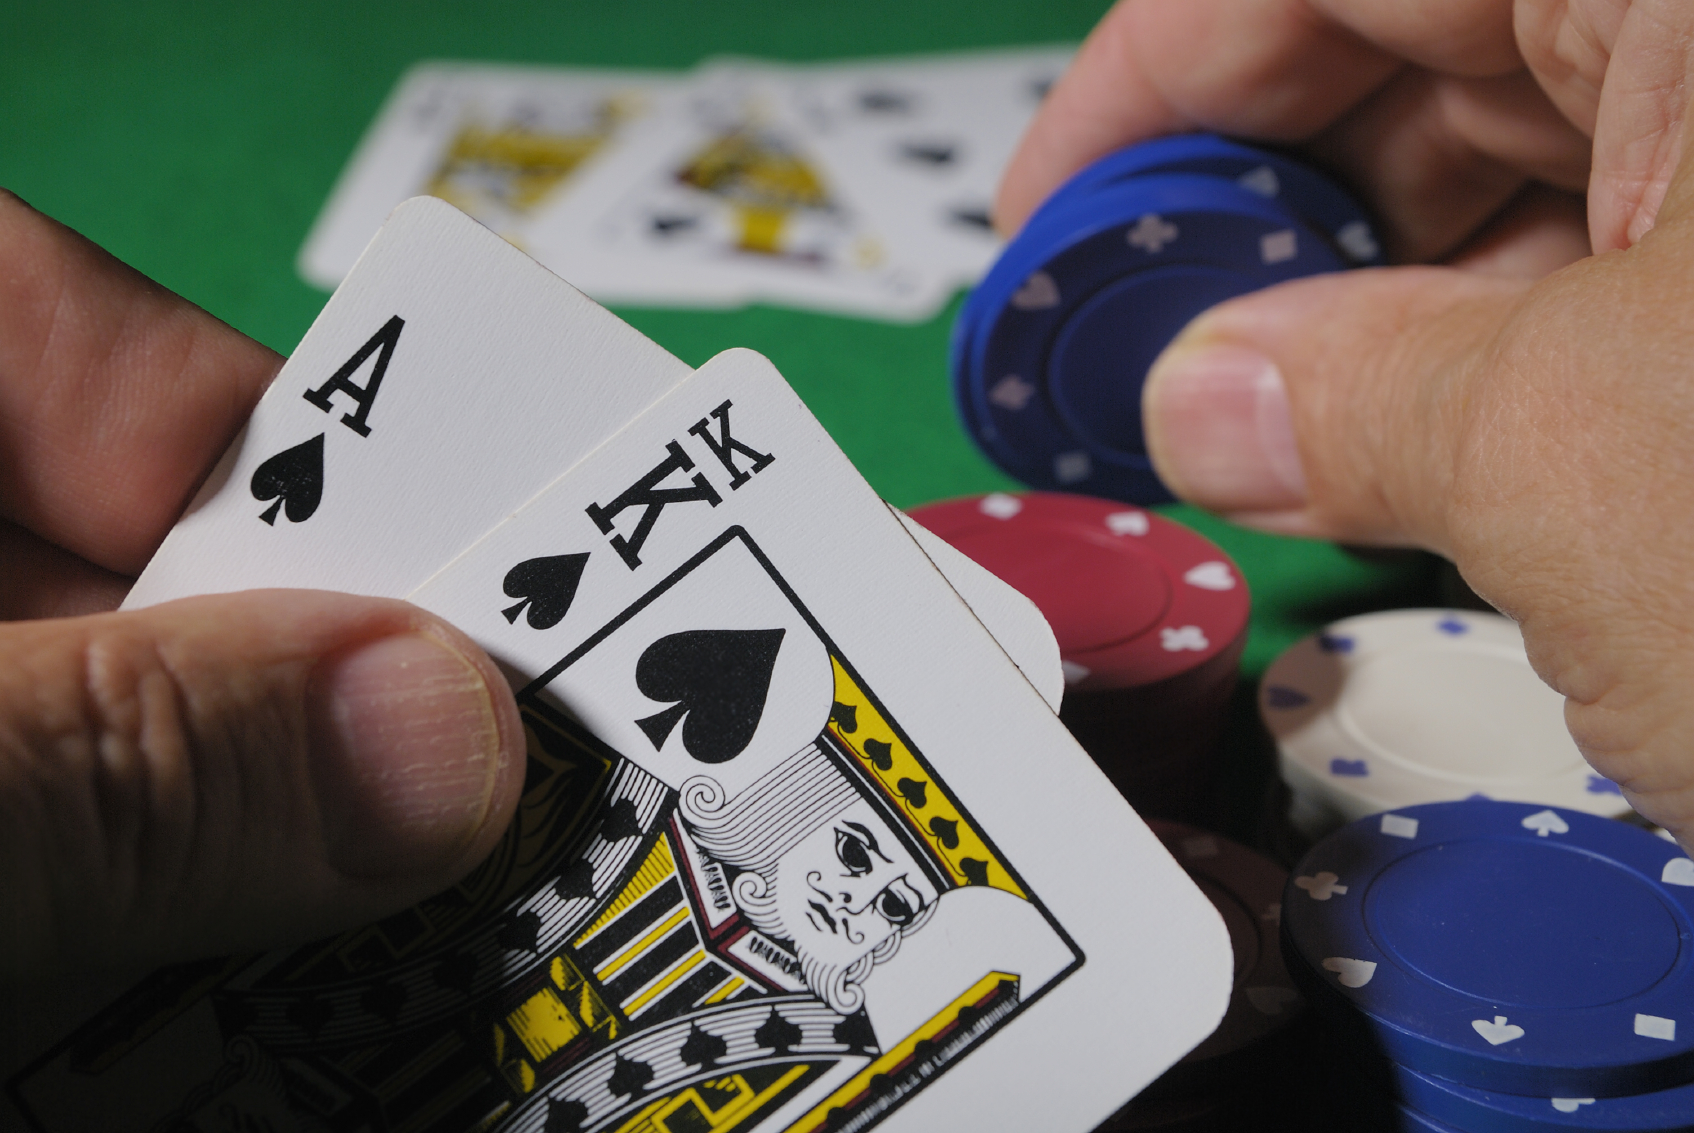 poker and hand Read this list of 5-card poker hands, ranked from the absolute best to the worst your guide to poker hand rankings from top to bottom what's the best hand you can have in poker.